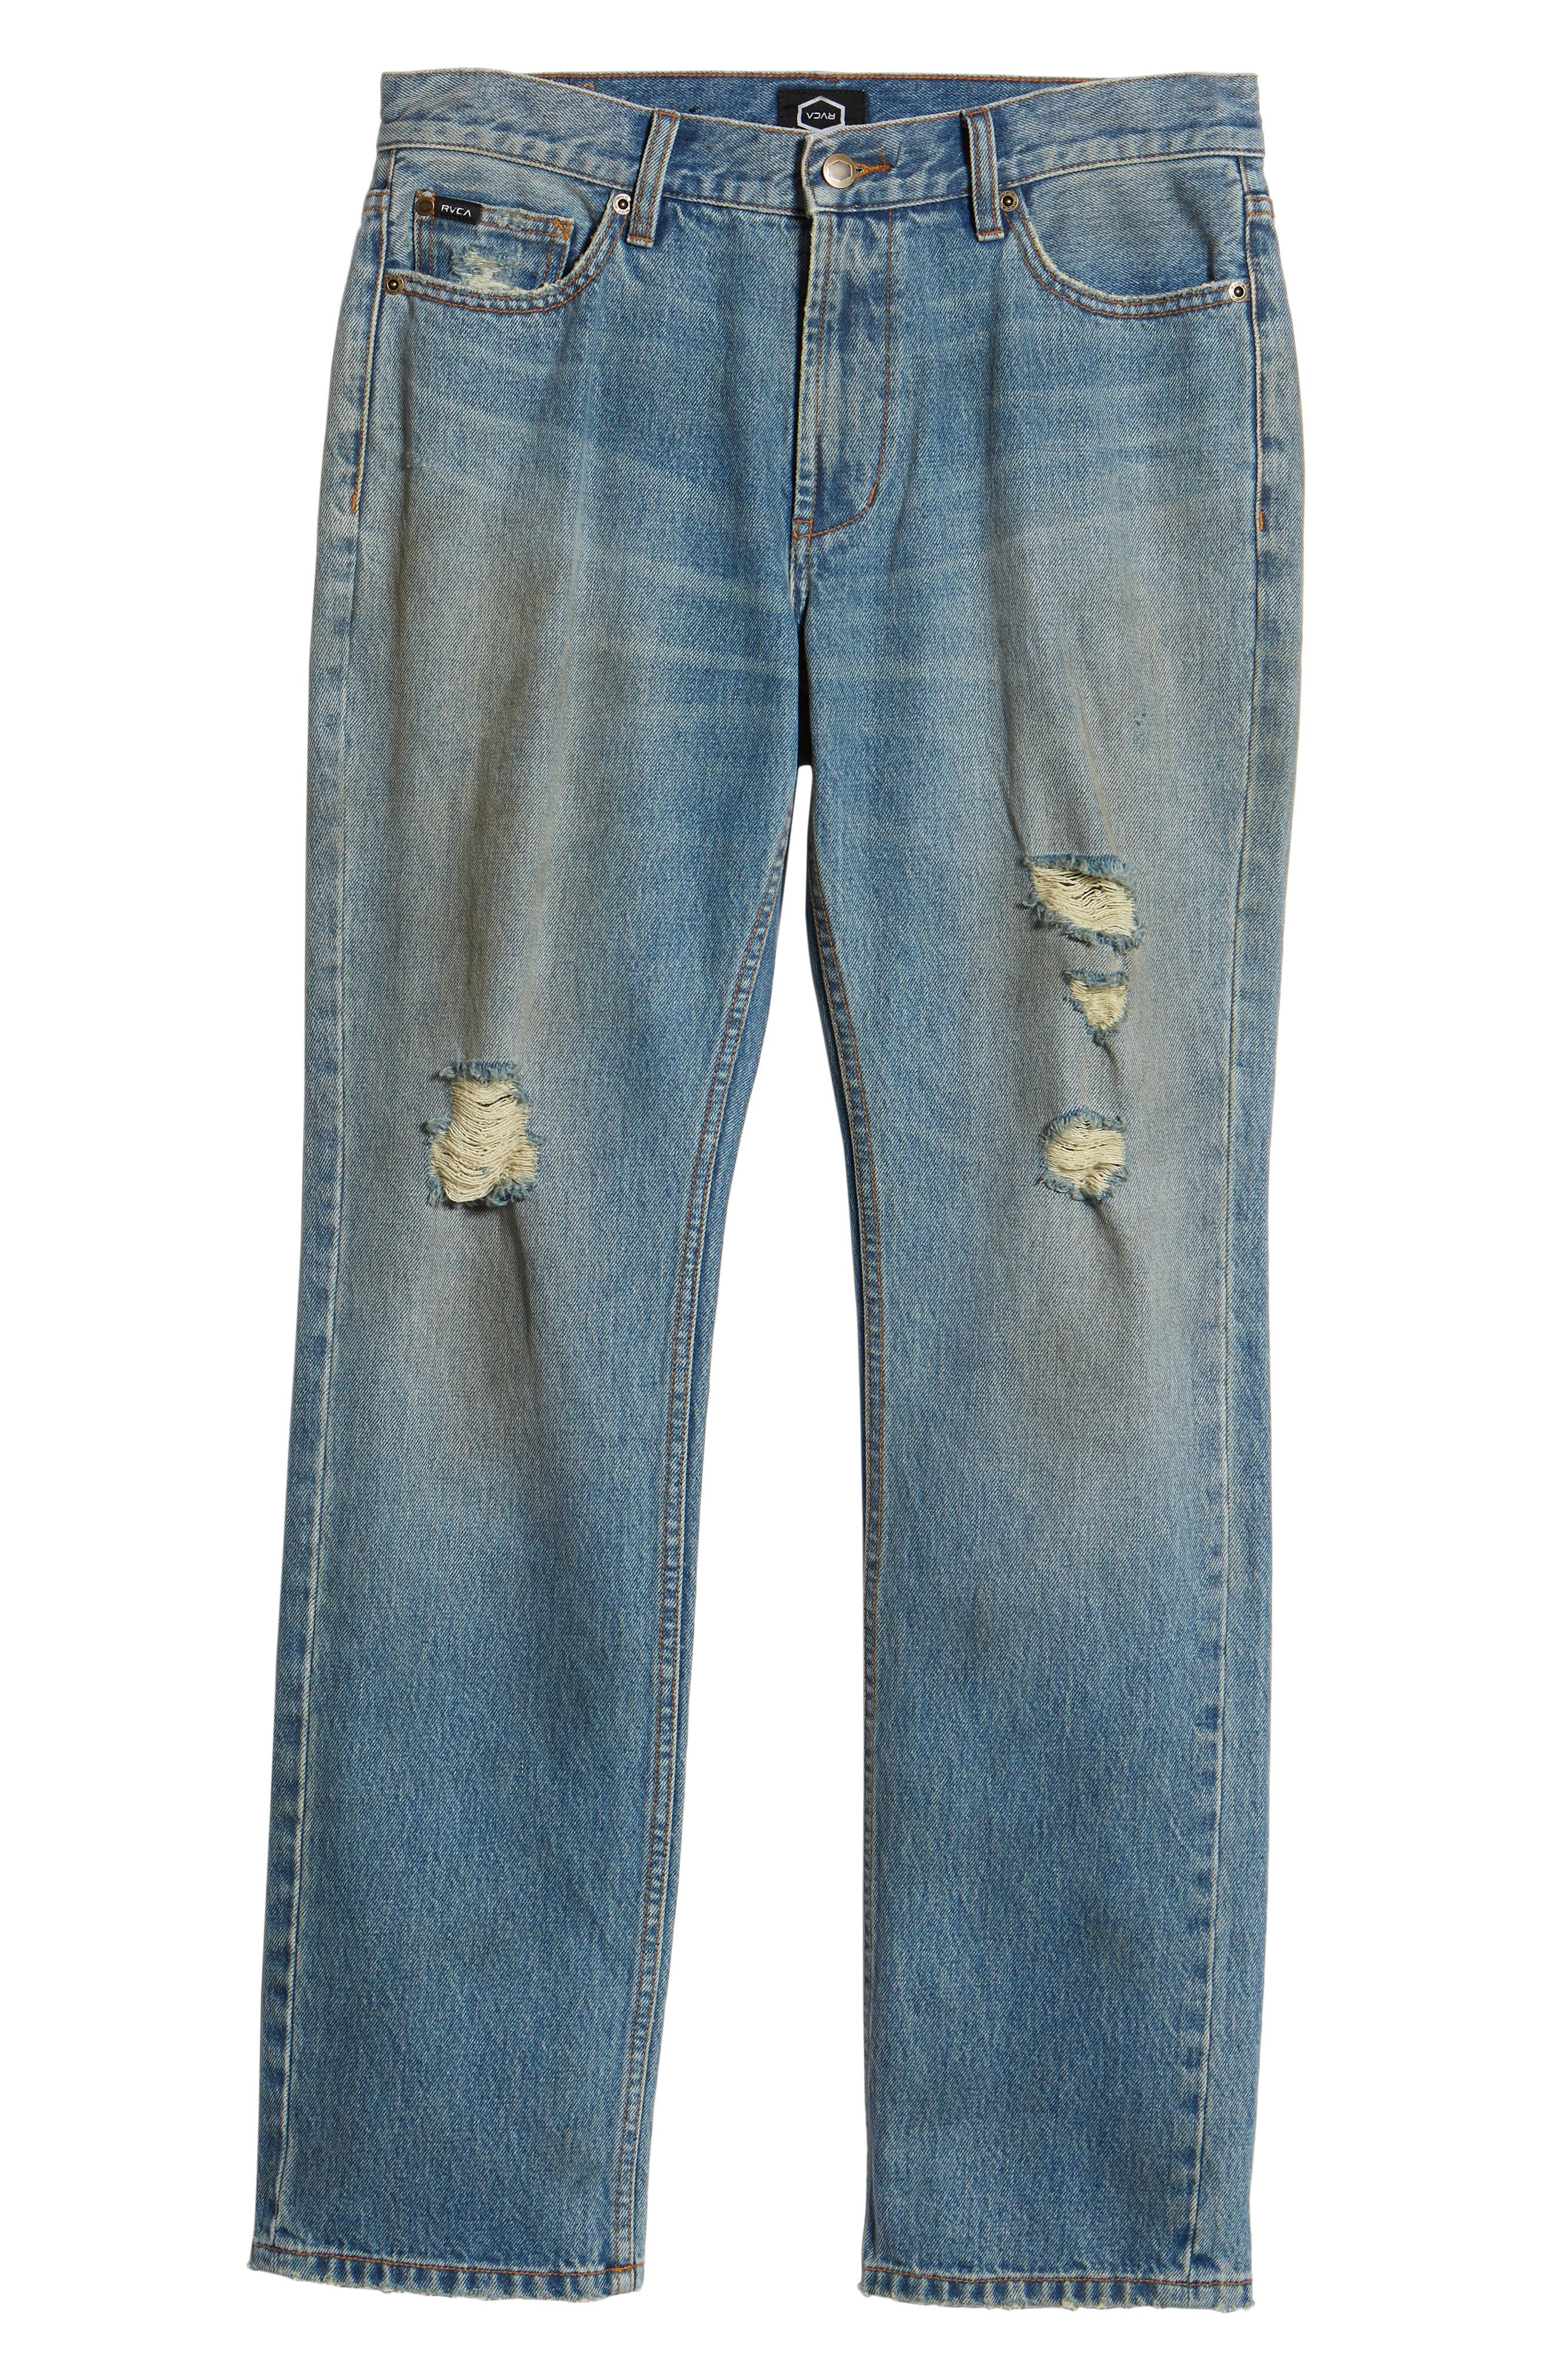 Stay RVCA Slim Fit Jeans,                             Alternate thumbnail 6, color,                             Blue